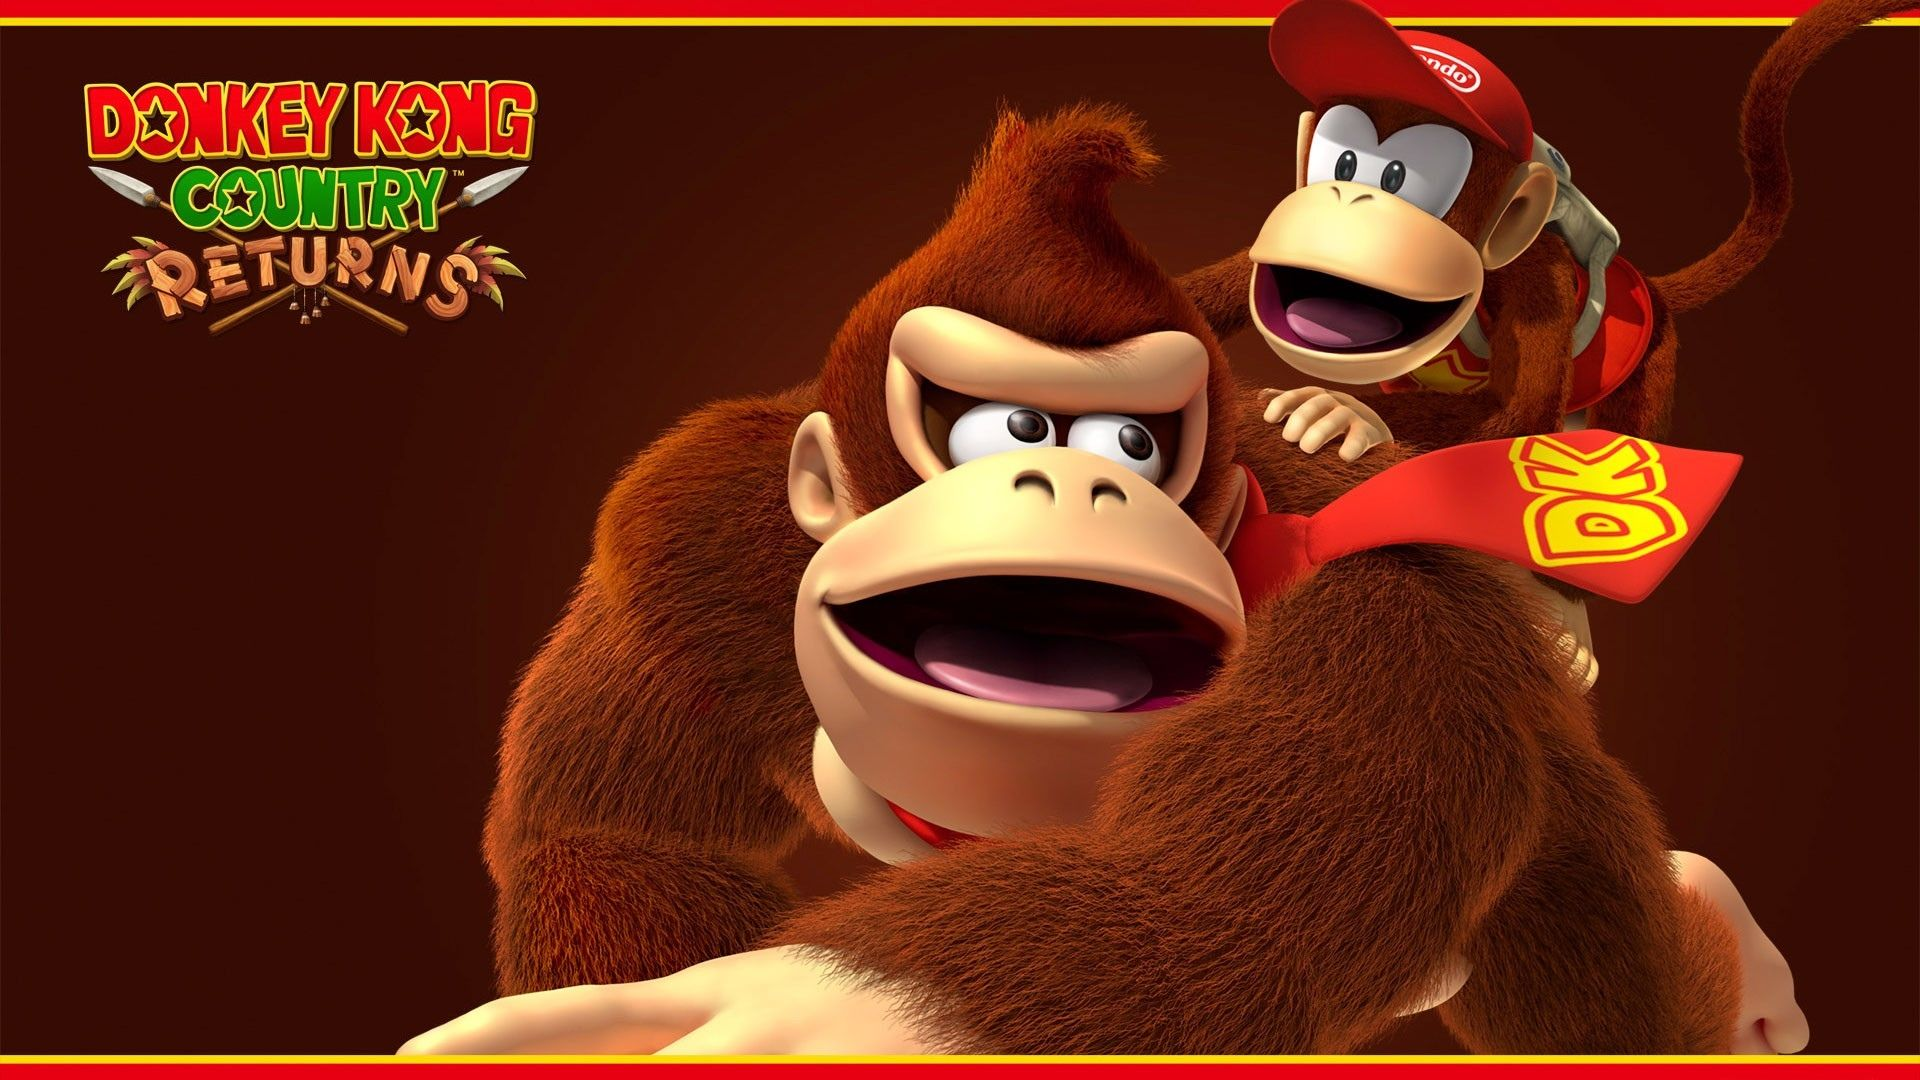 Video Game Donkey Kong Country Returns Diddy Kong Donkey Kong Wallpaper Donkey Kong Country Donkey Kong Donkey Kong Country Returns